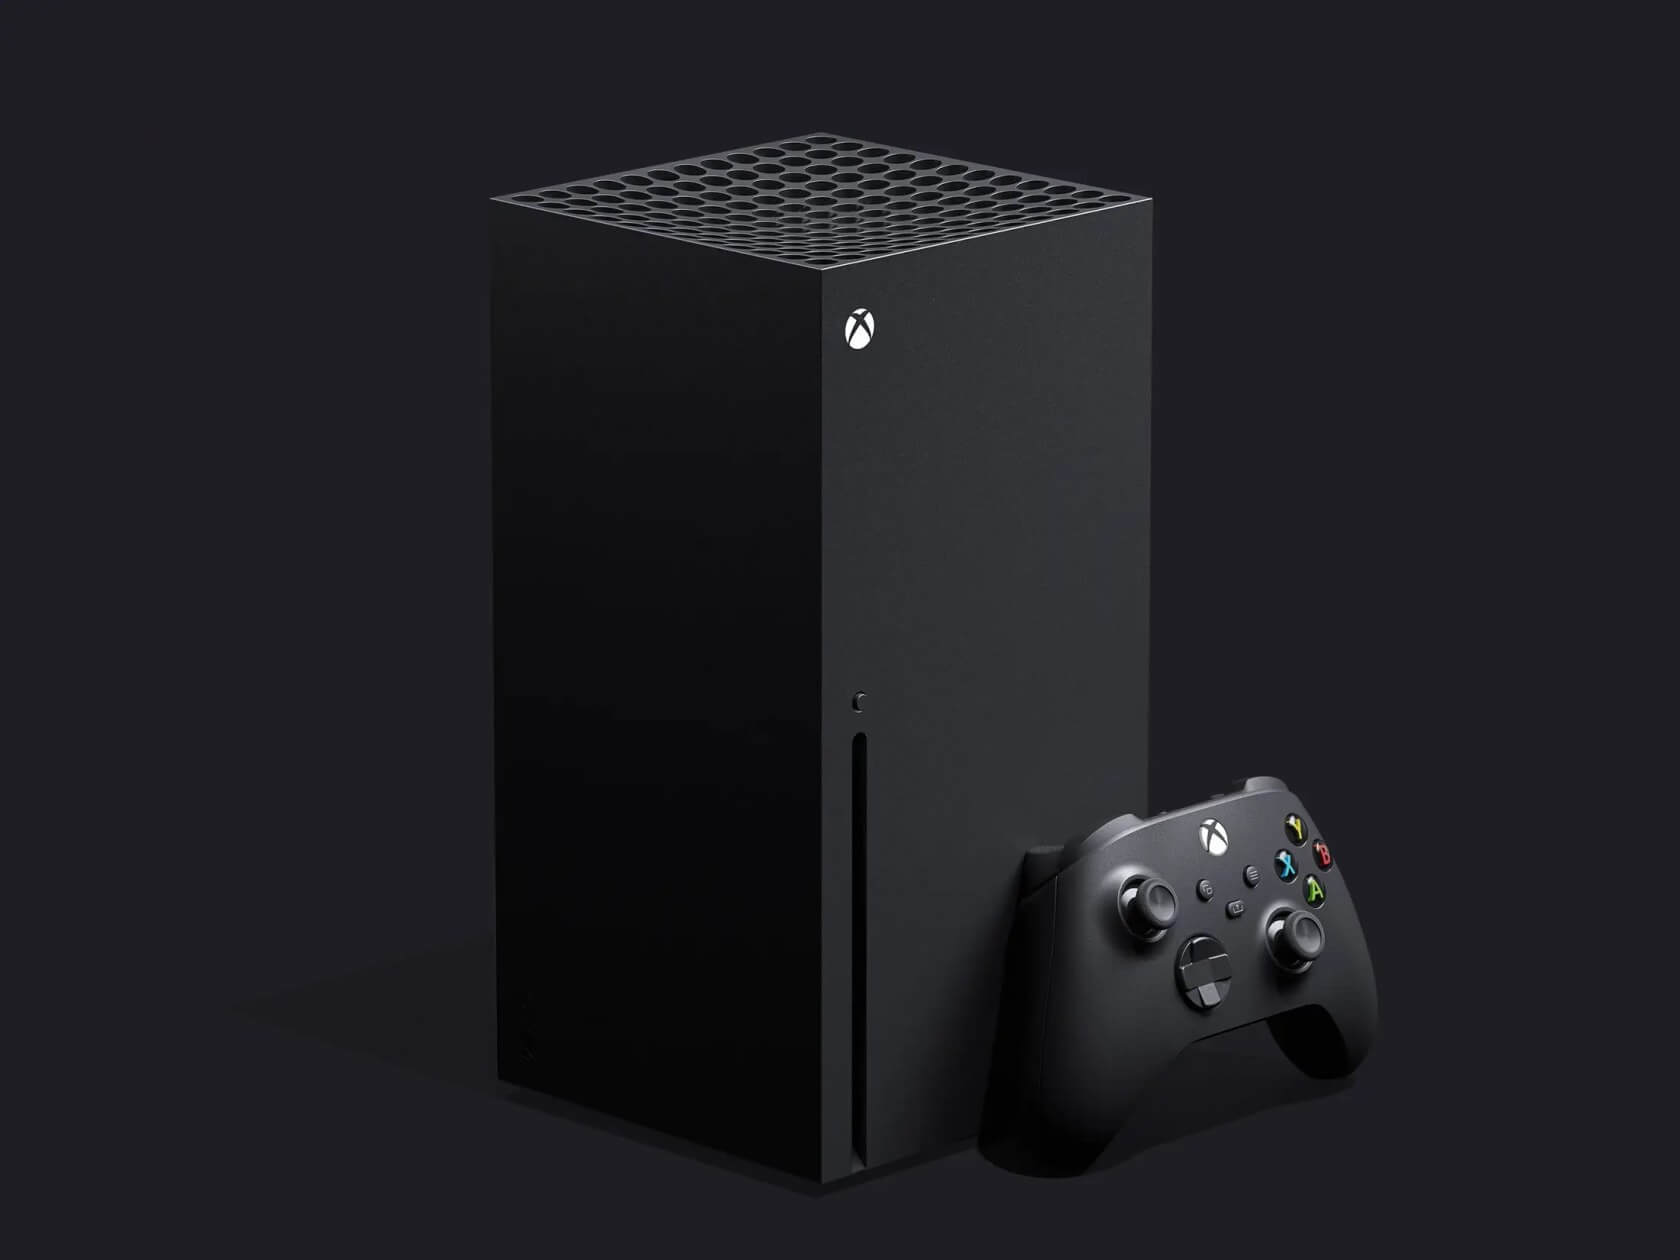 Analyst firm thinks the PS5 and Xbox Series X will be delayed until 2021